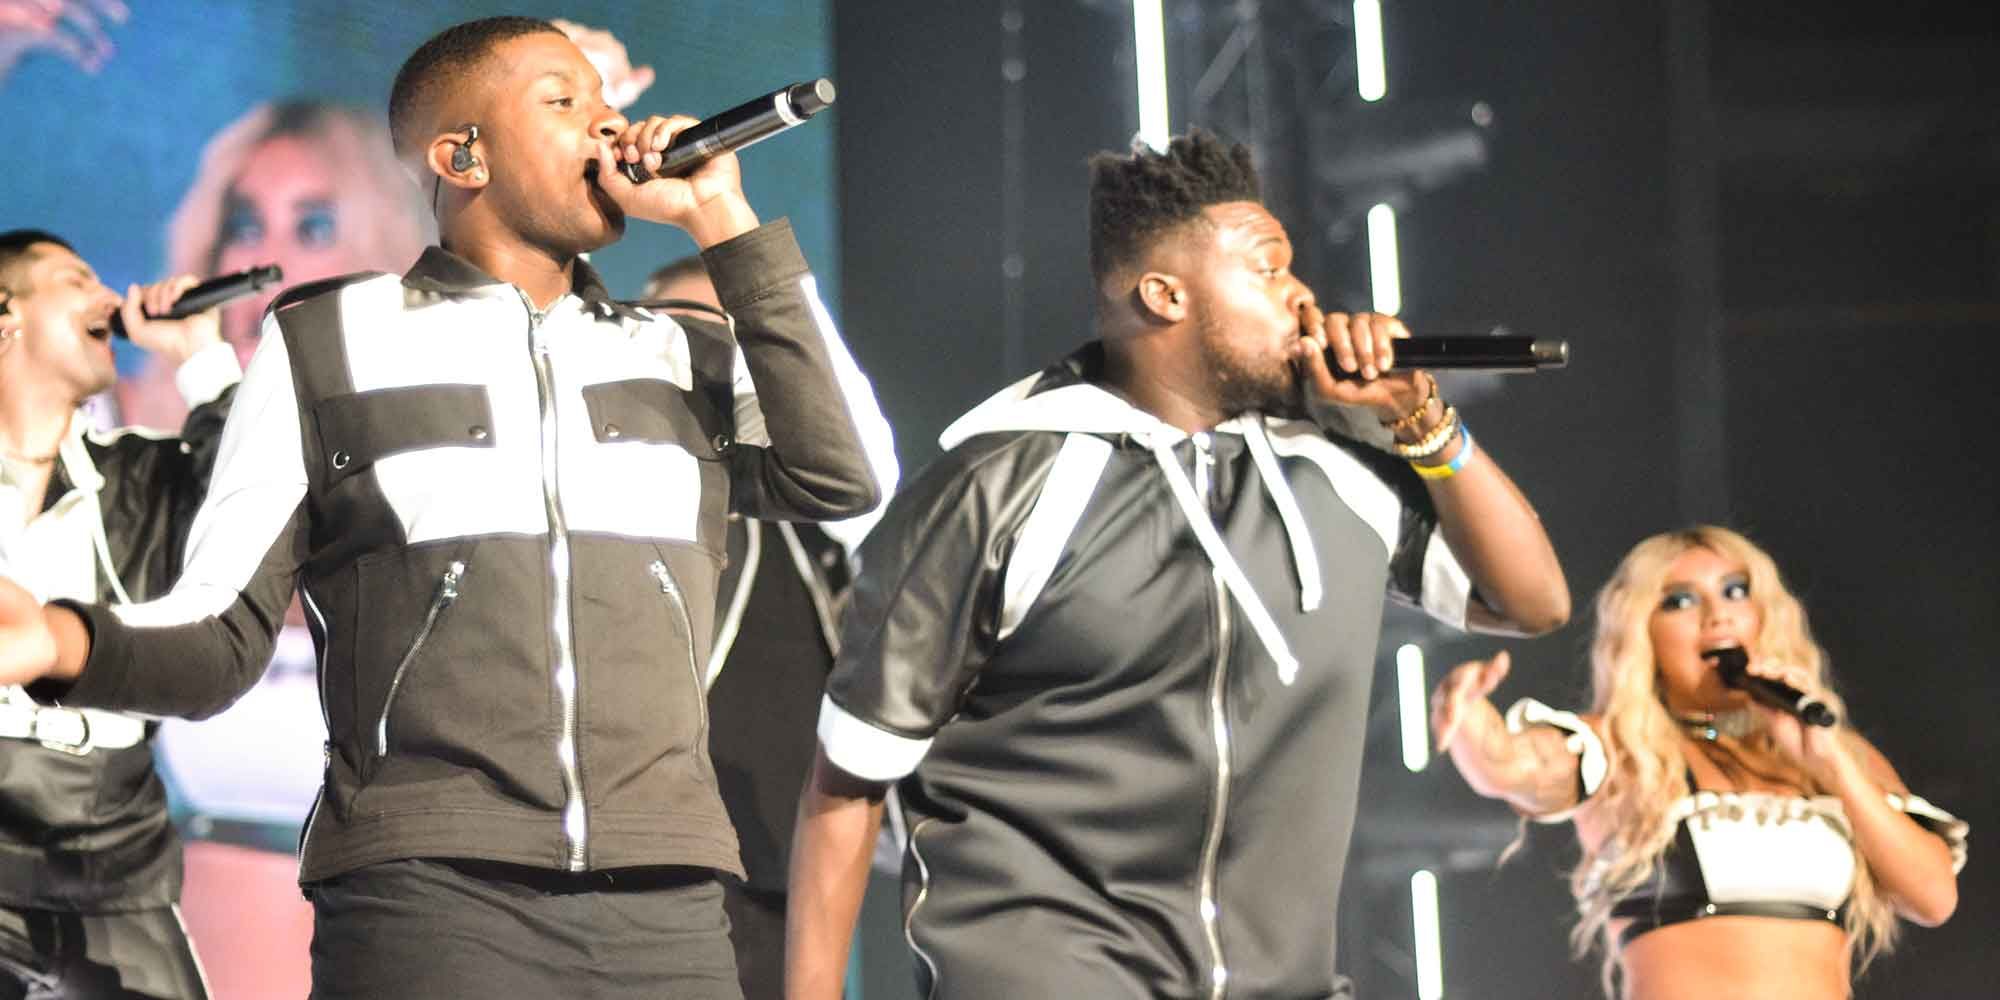 Pentatonix Perform to Largest Crowd on Current Tour